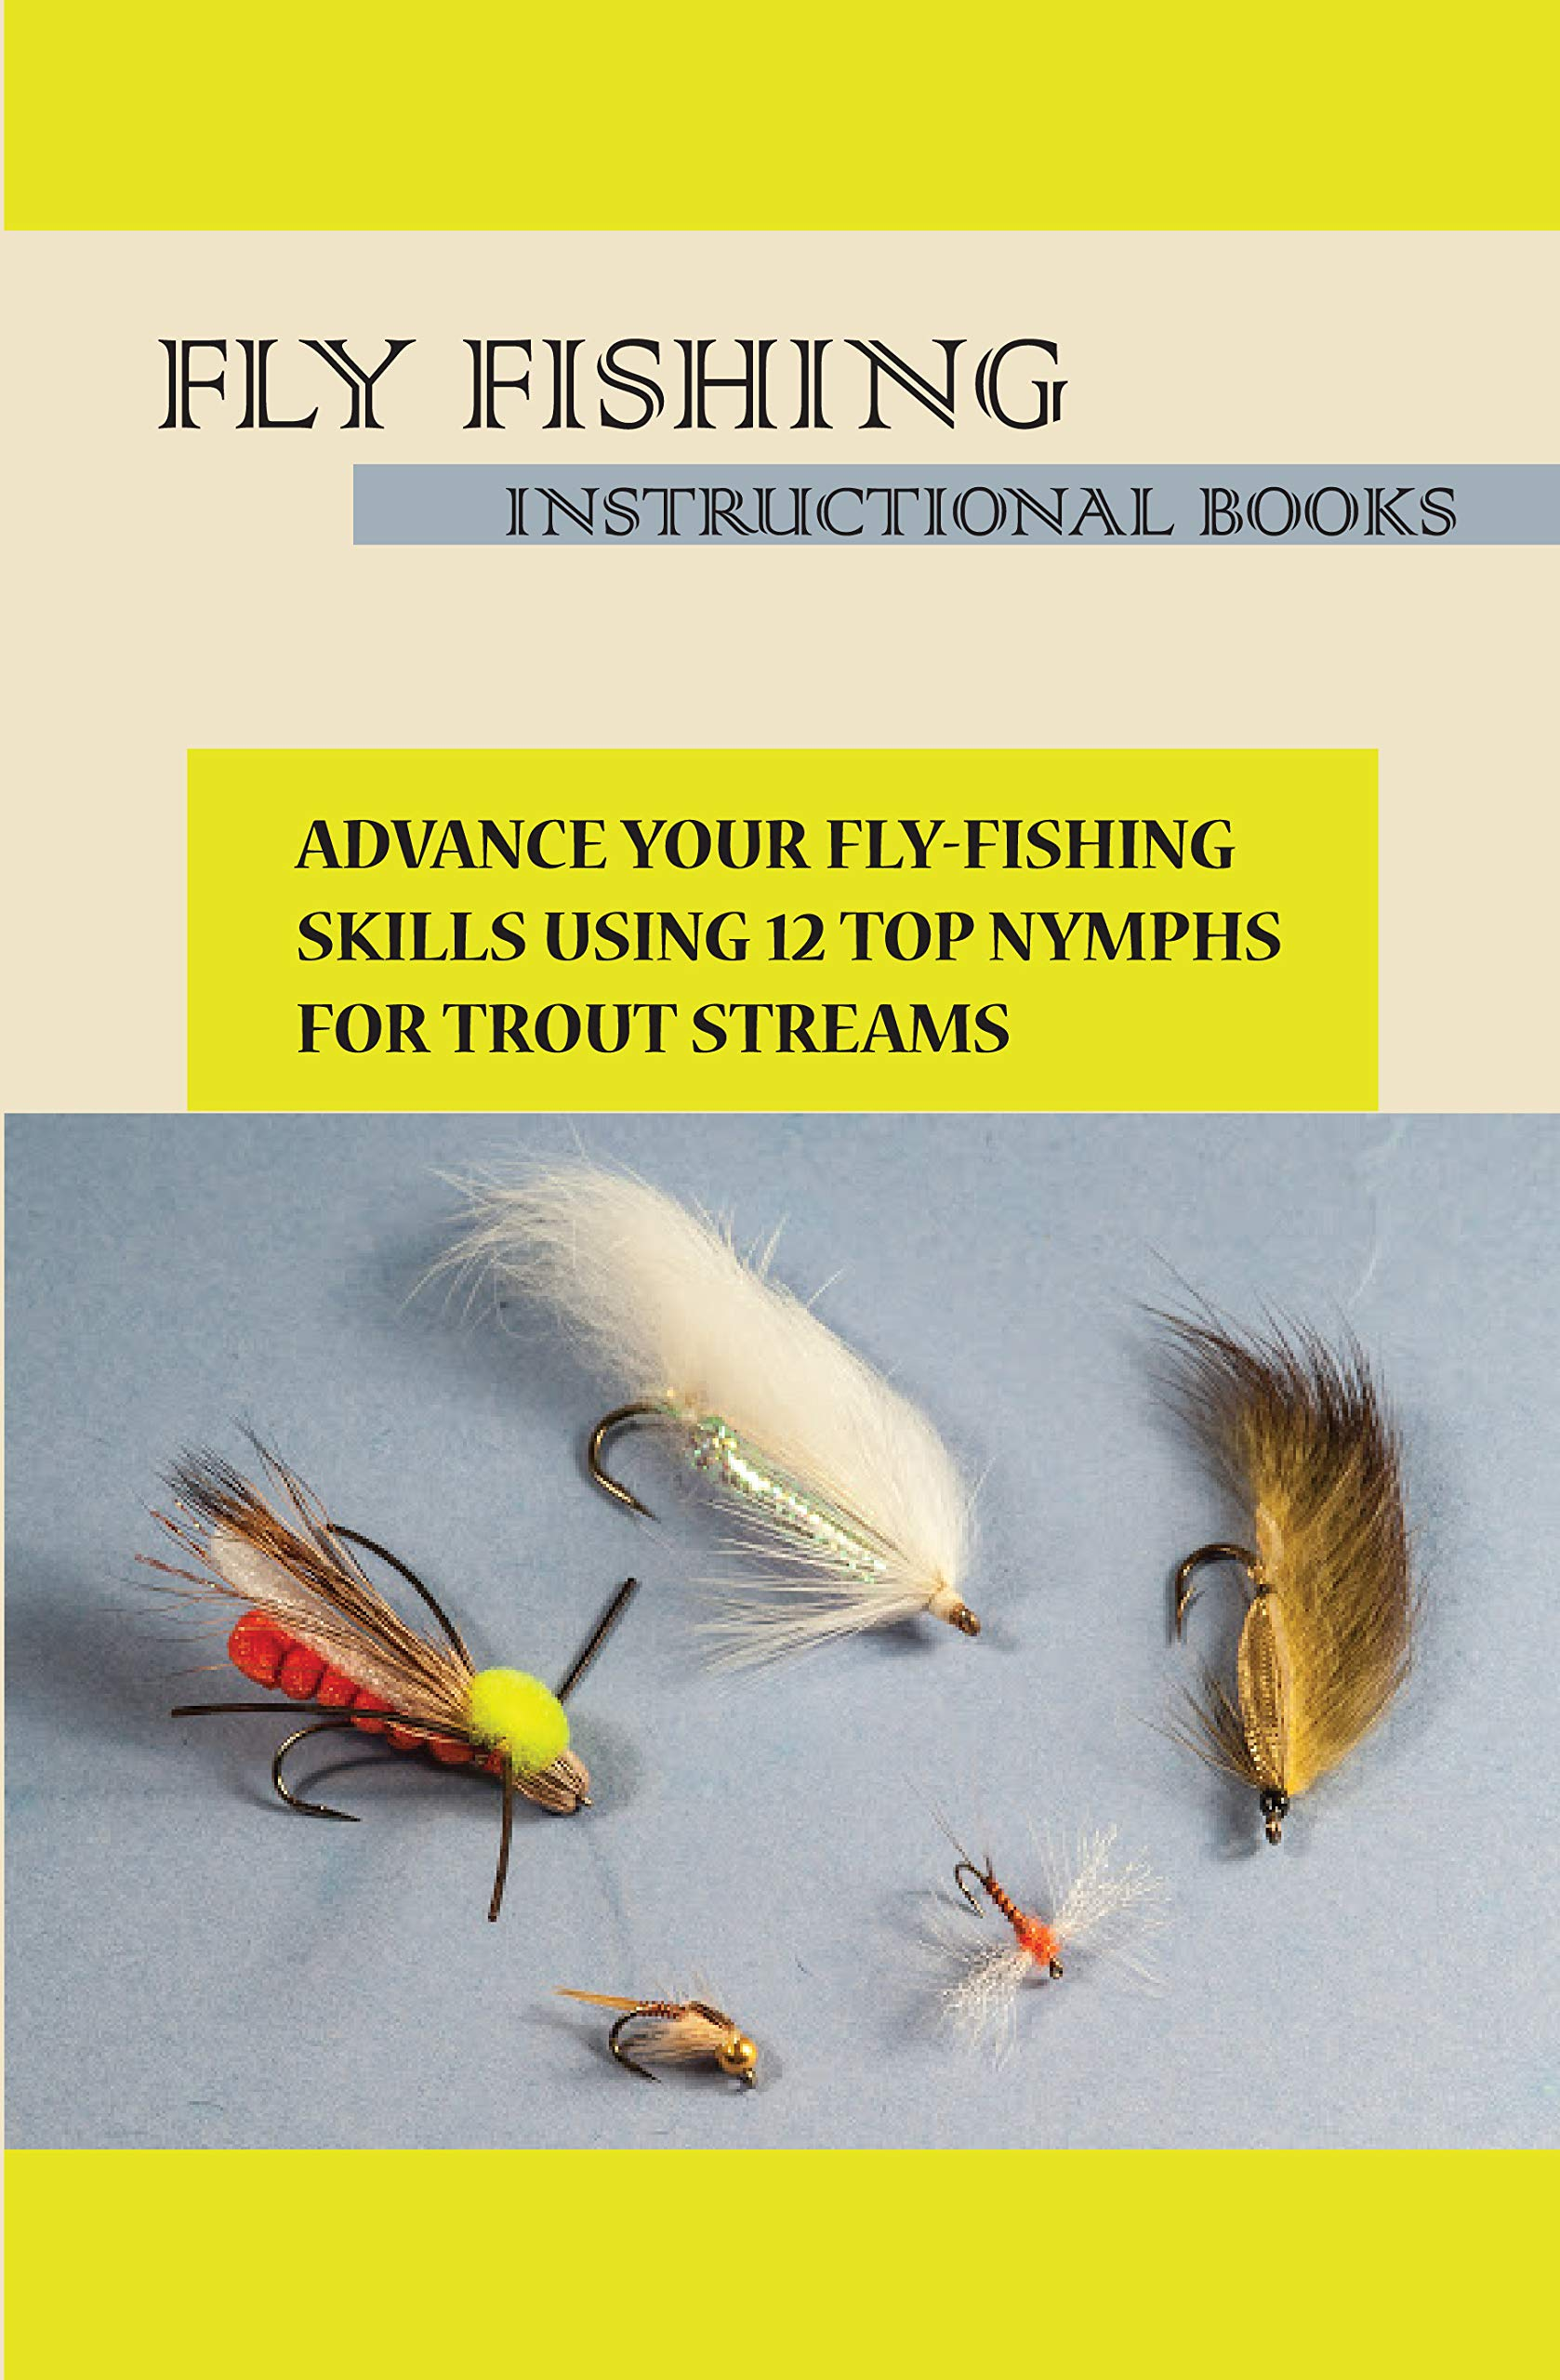 Fly Fishing Instructional Books- Advance Your Fly-fishing Skills Using 12 Top Nymphs For Trout Streams: Fly Fishing Instructional Books